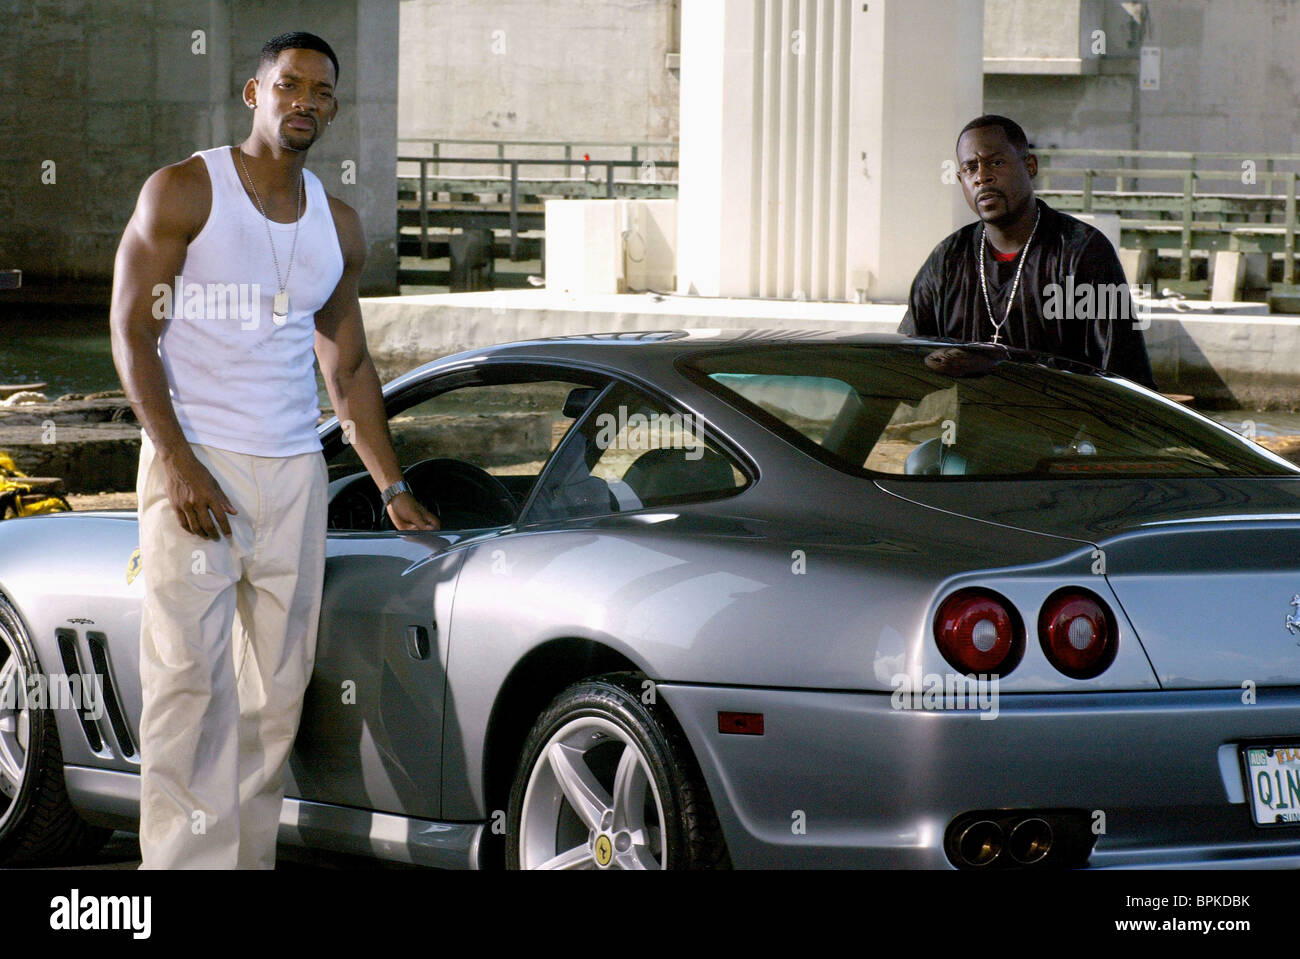 Rollschrank Bad Will Smith And Martin Lawrence Bad Boys Ii 2003 Stock Photo